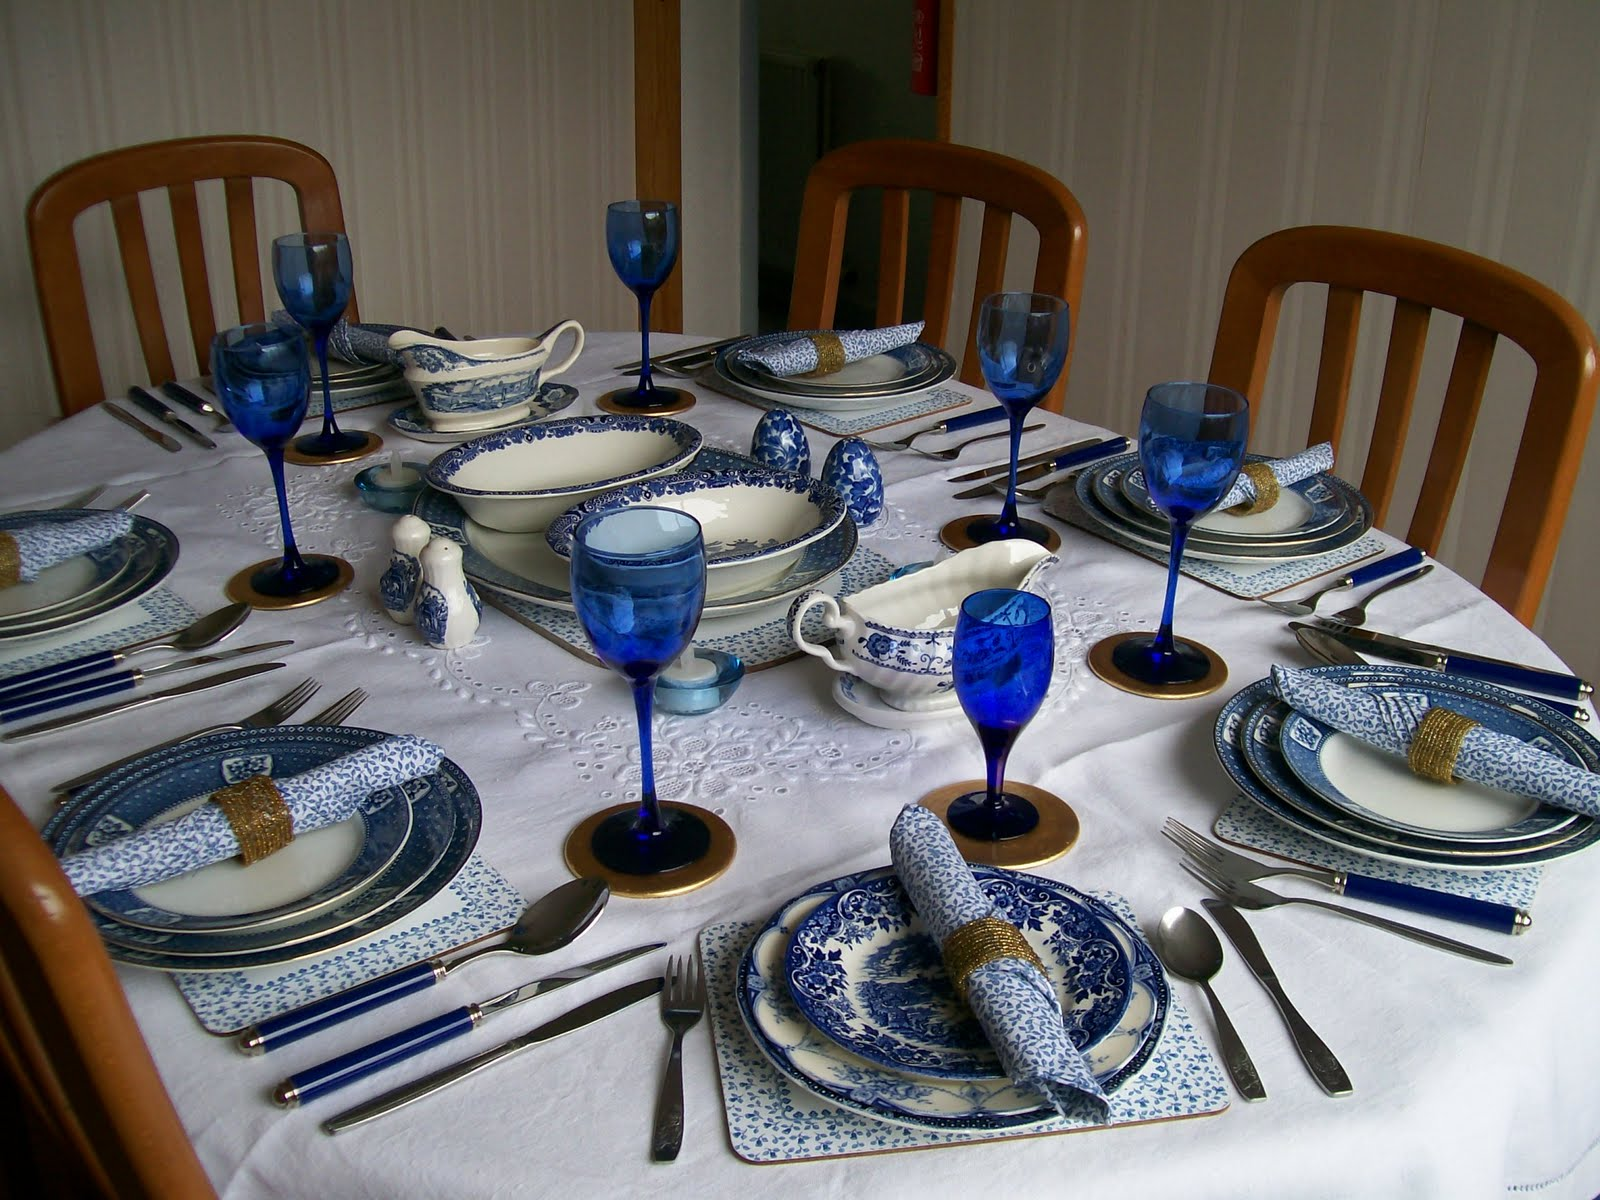 Thank you for inviting us to dinner please be aware of Dinner table setting pictures